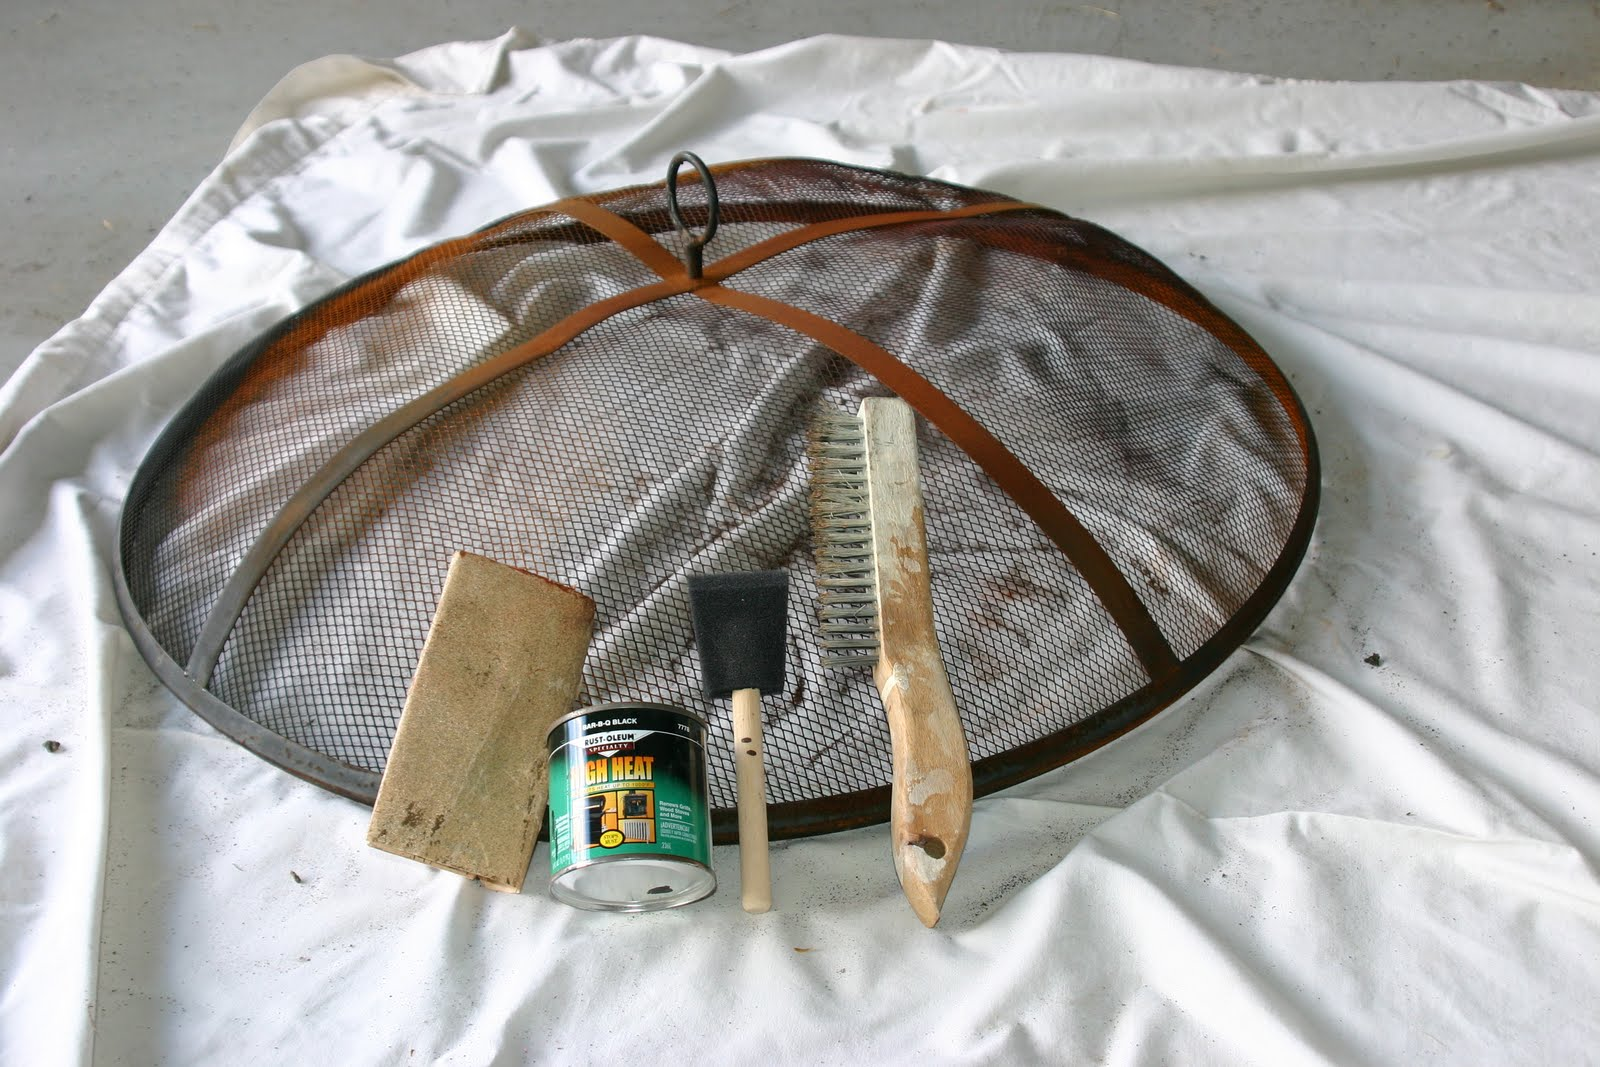 Cleaning Fire Pit : Cleaning a copper fire pit shine your light